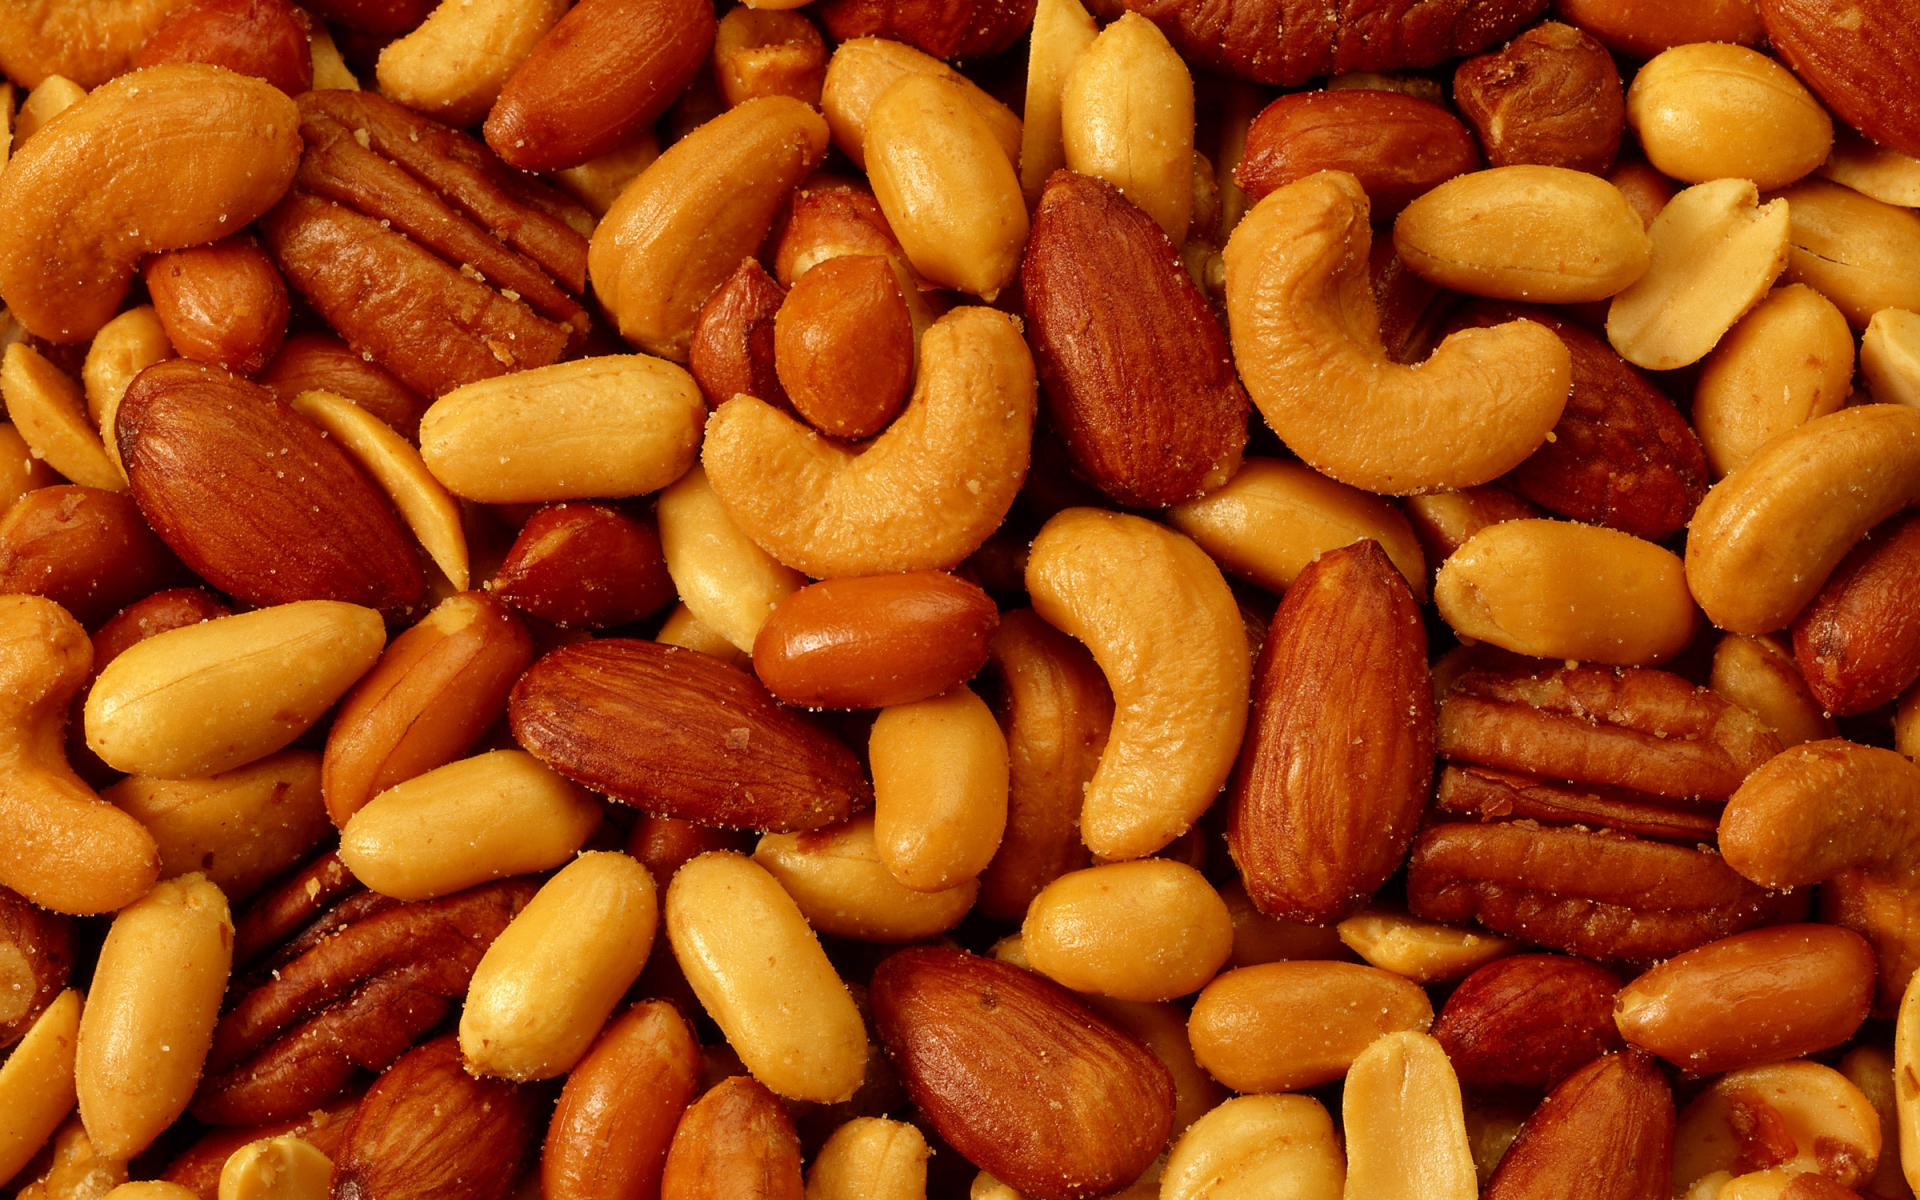 Nut HD Wallpaper | Background Image | 1920x1200 | ID ...